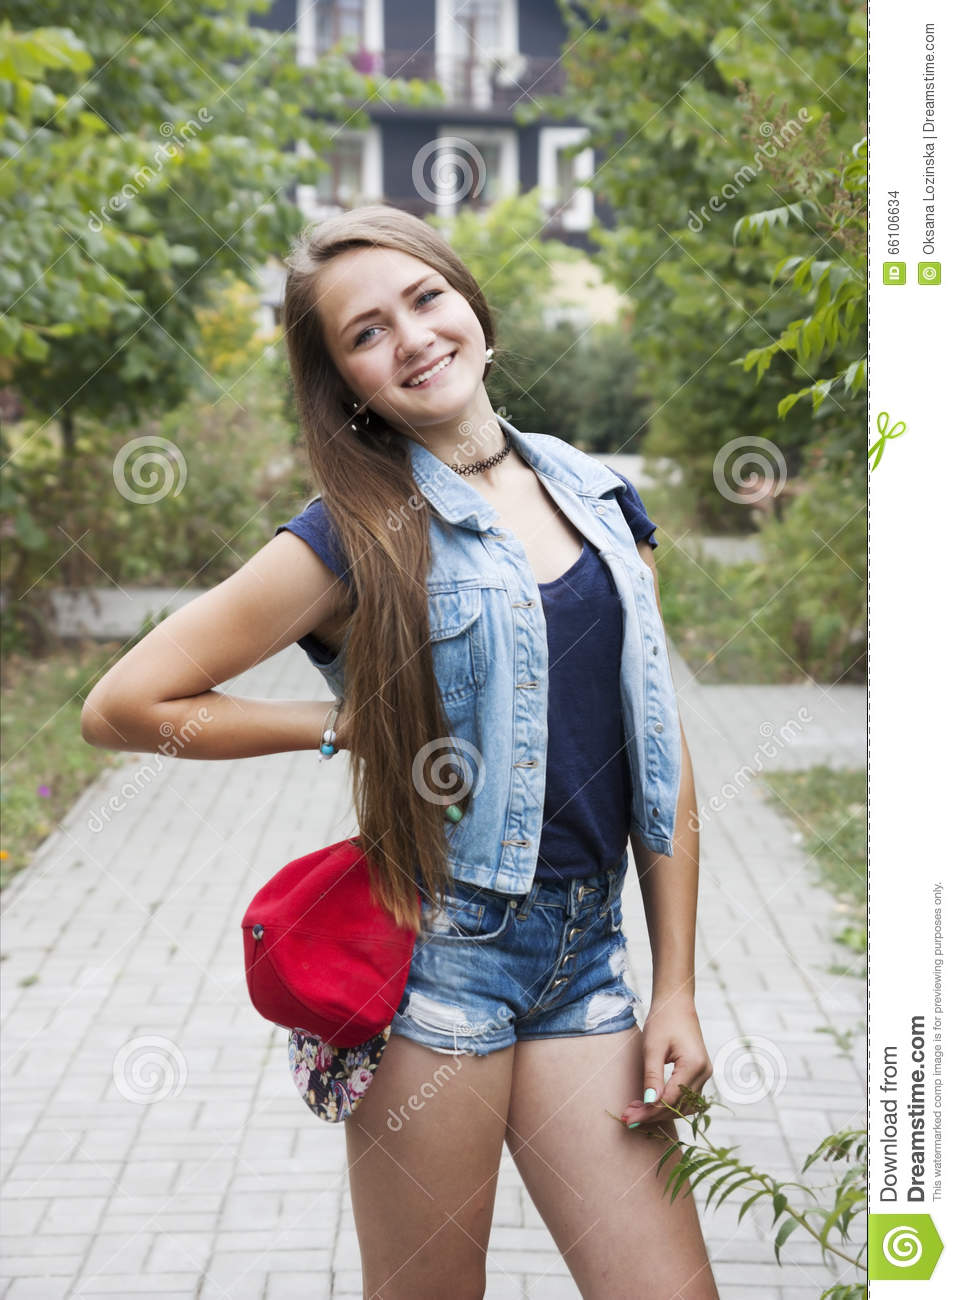 Teen Girl In Jeans Stock Photo. Image Of Caucasian, Model